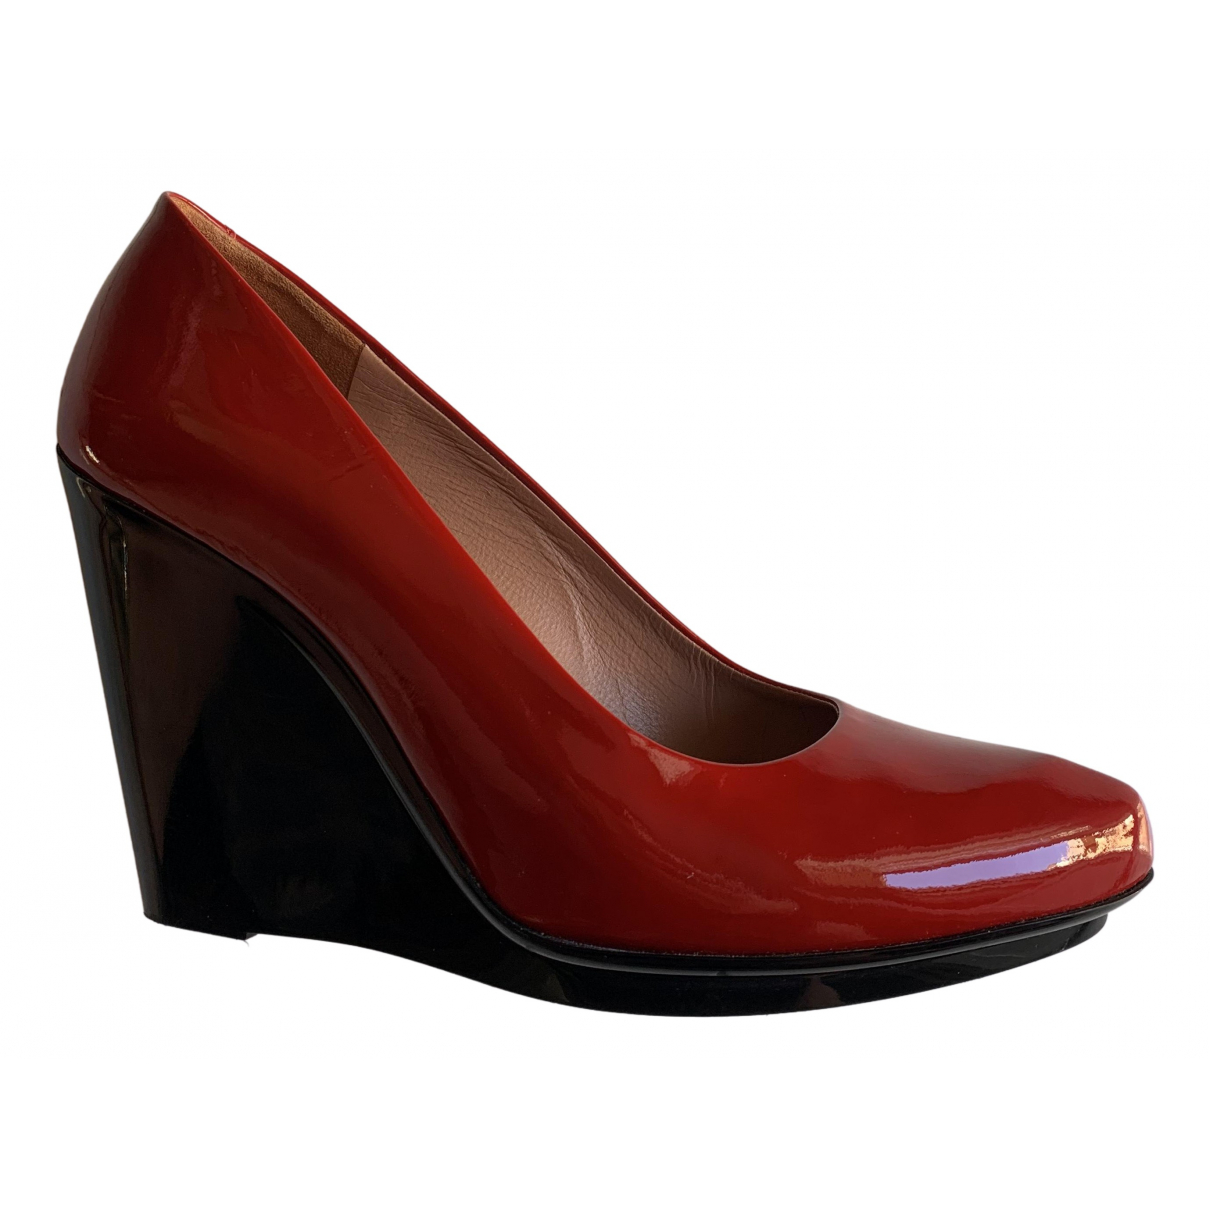 Robert Clergerie \N Pumps in  Rot Lackleder